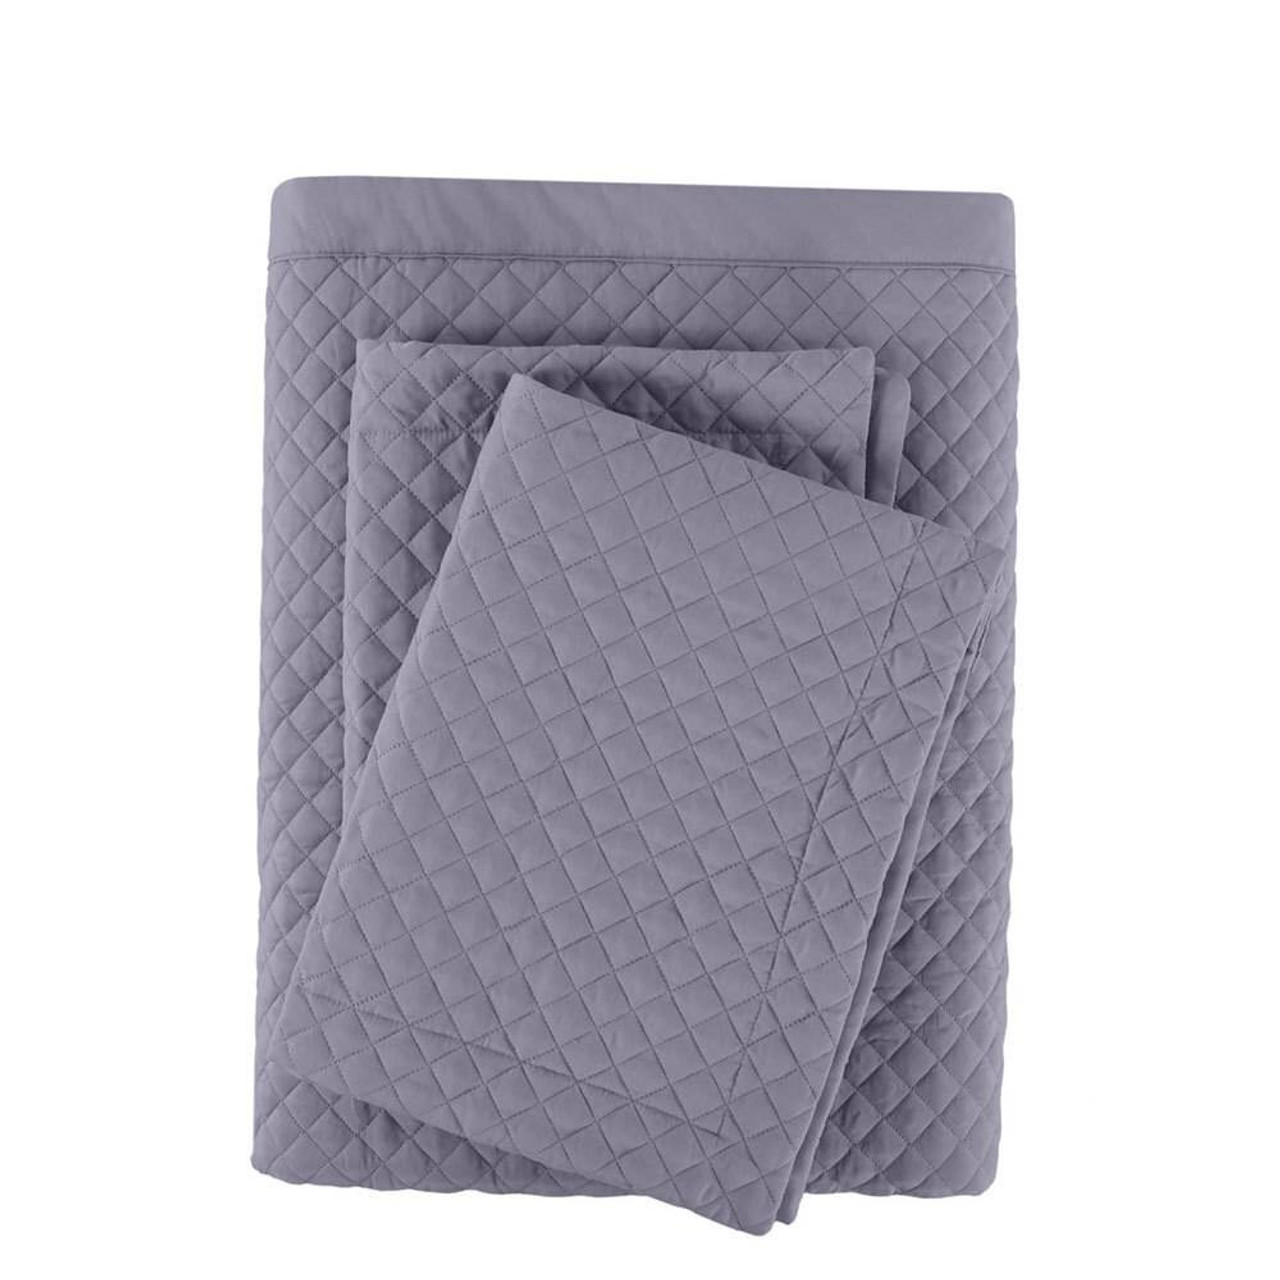 Berkshire Blankets BERKSHIRE or RADIANCE DIAMOND QUILT or FITTED COVERLETS